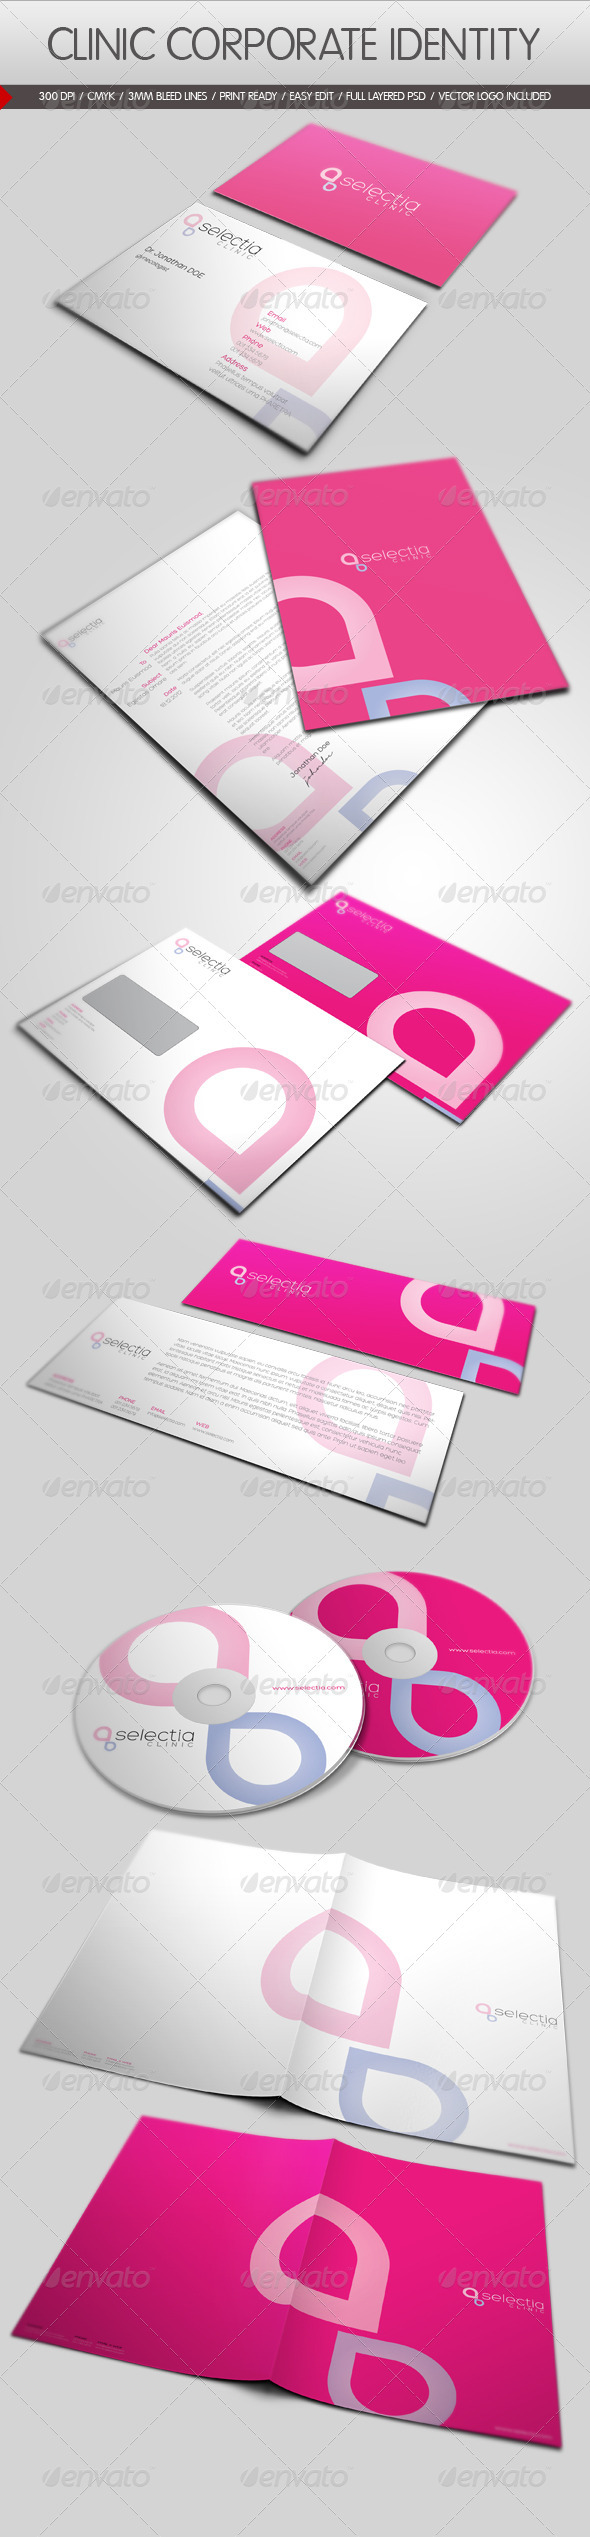 Clinic Corporate Identity - Stationery Print Templates